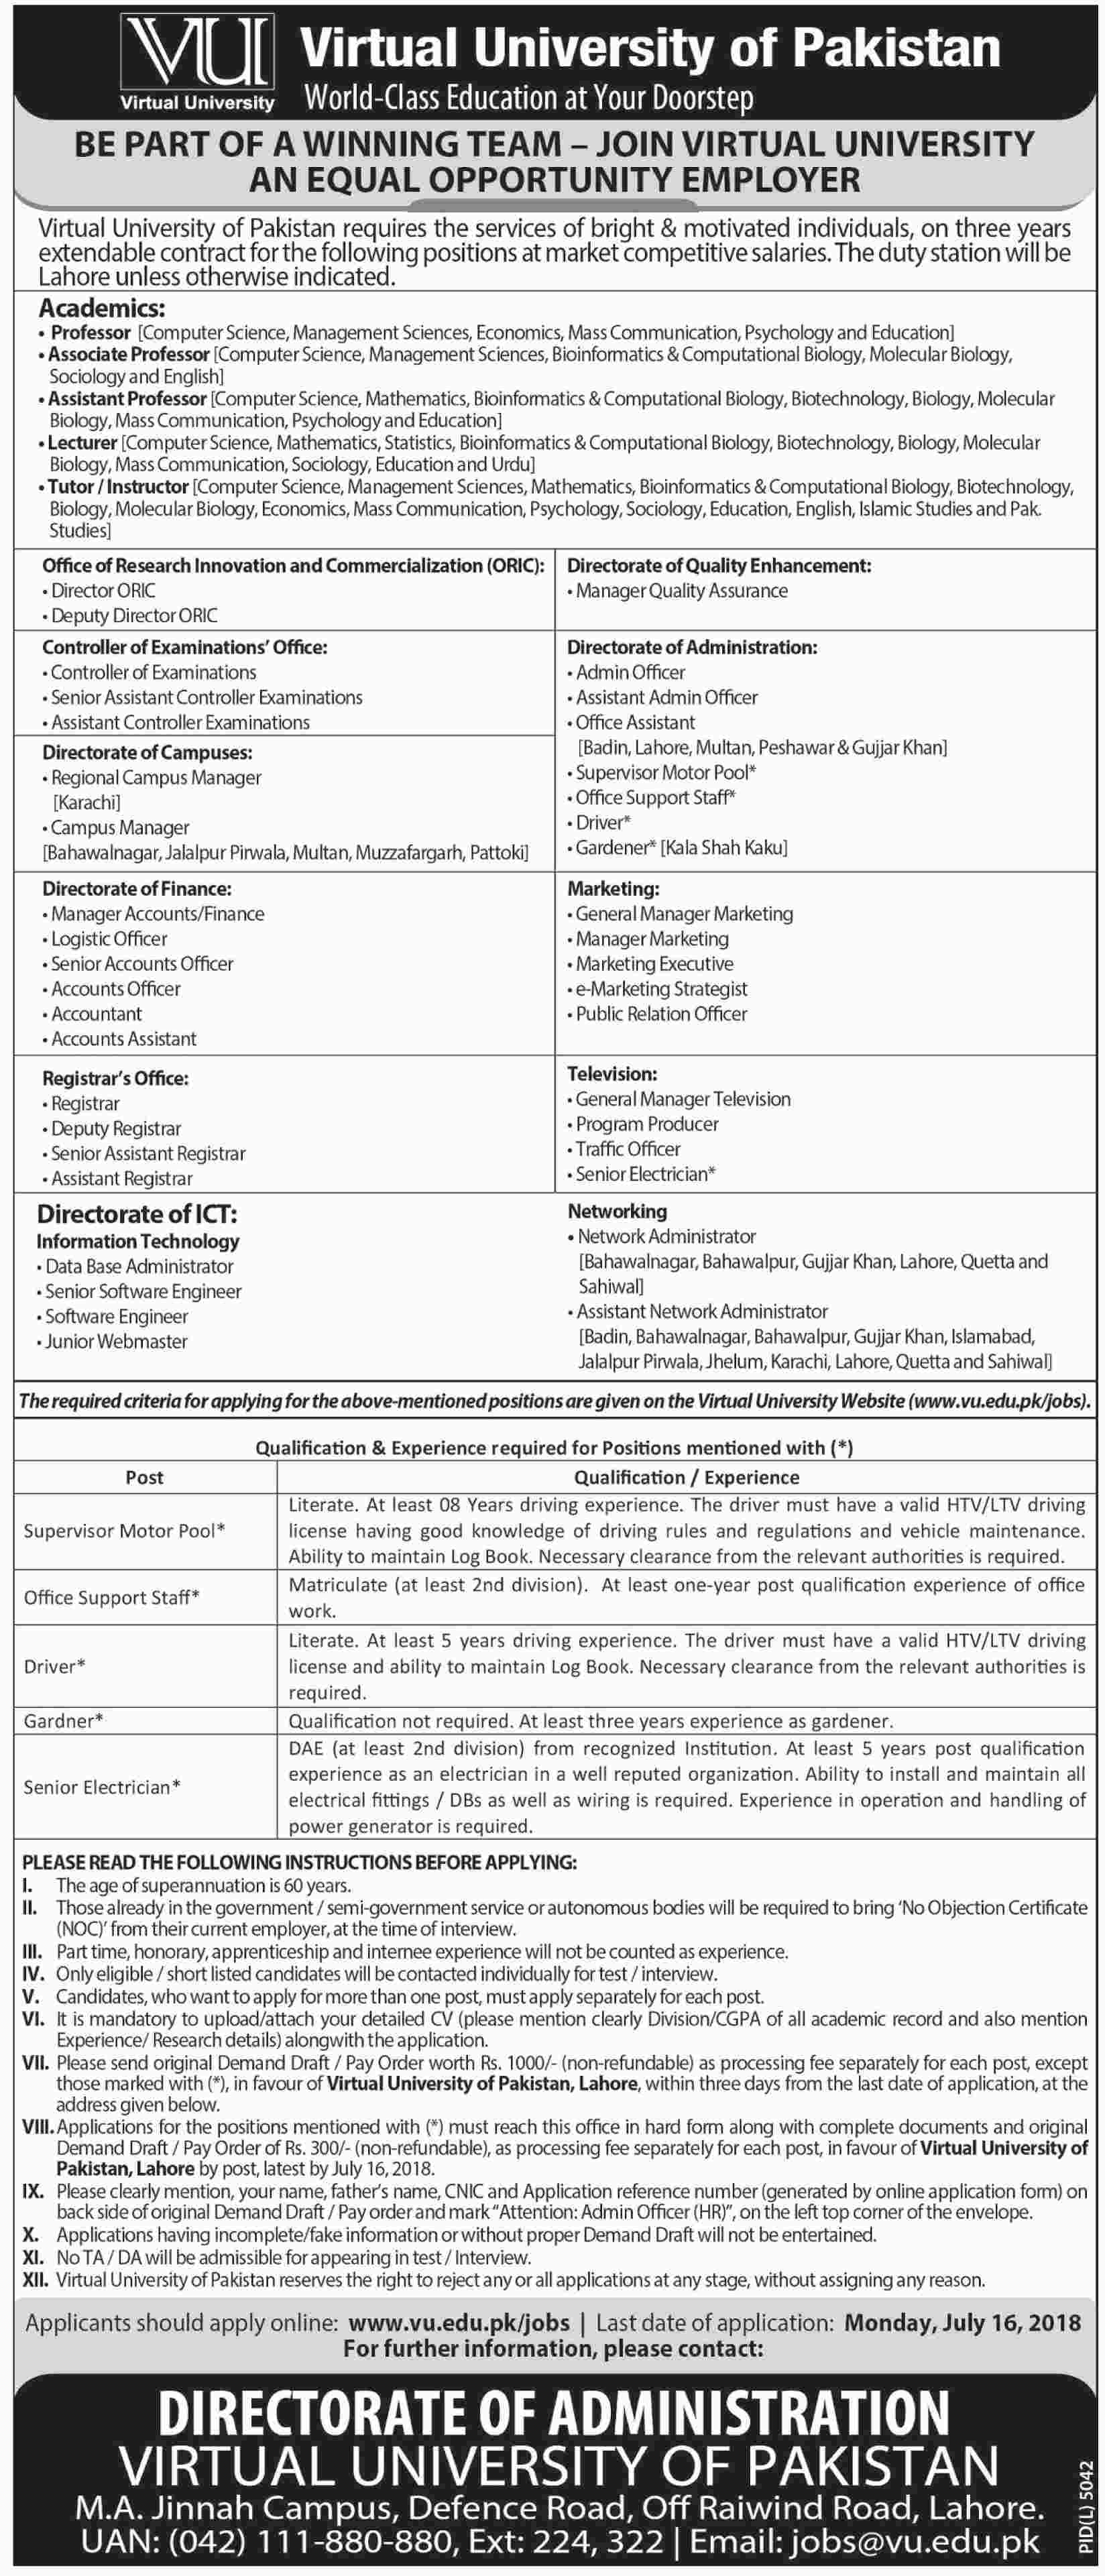 Jobs in Virtual University of Pakistan 01 July 2018